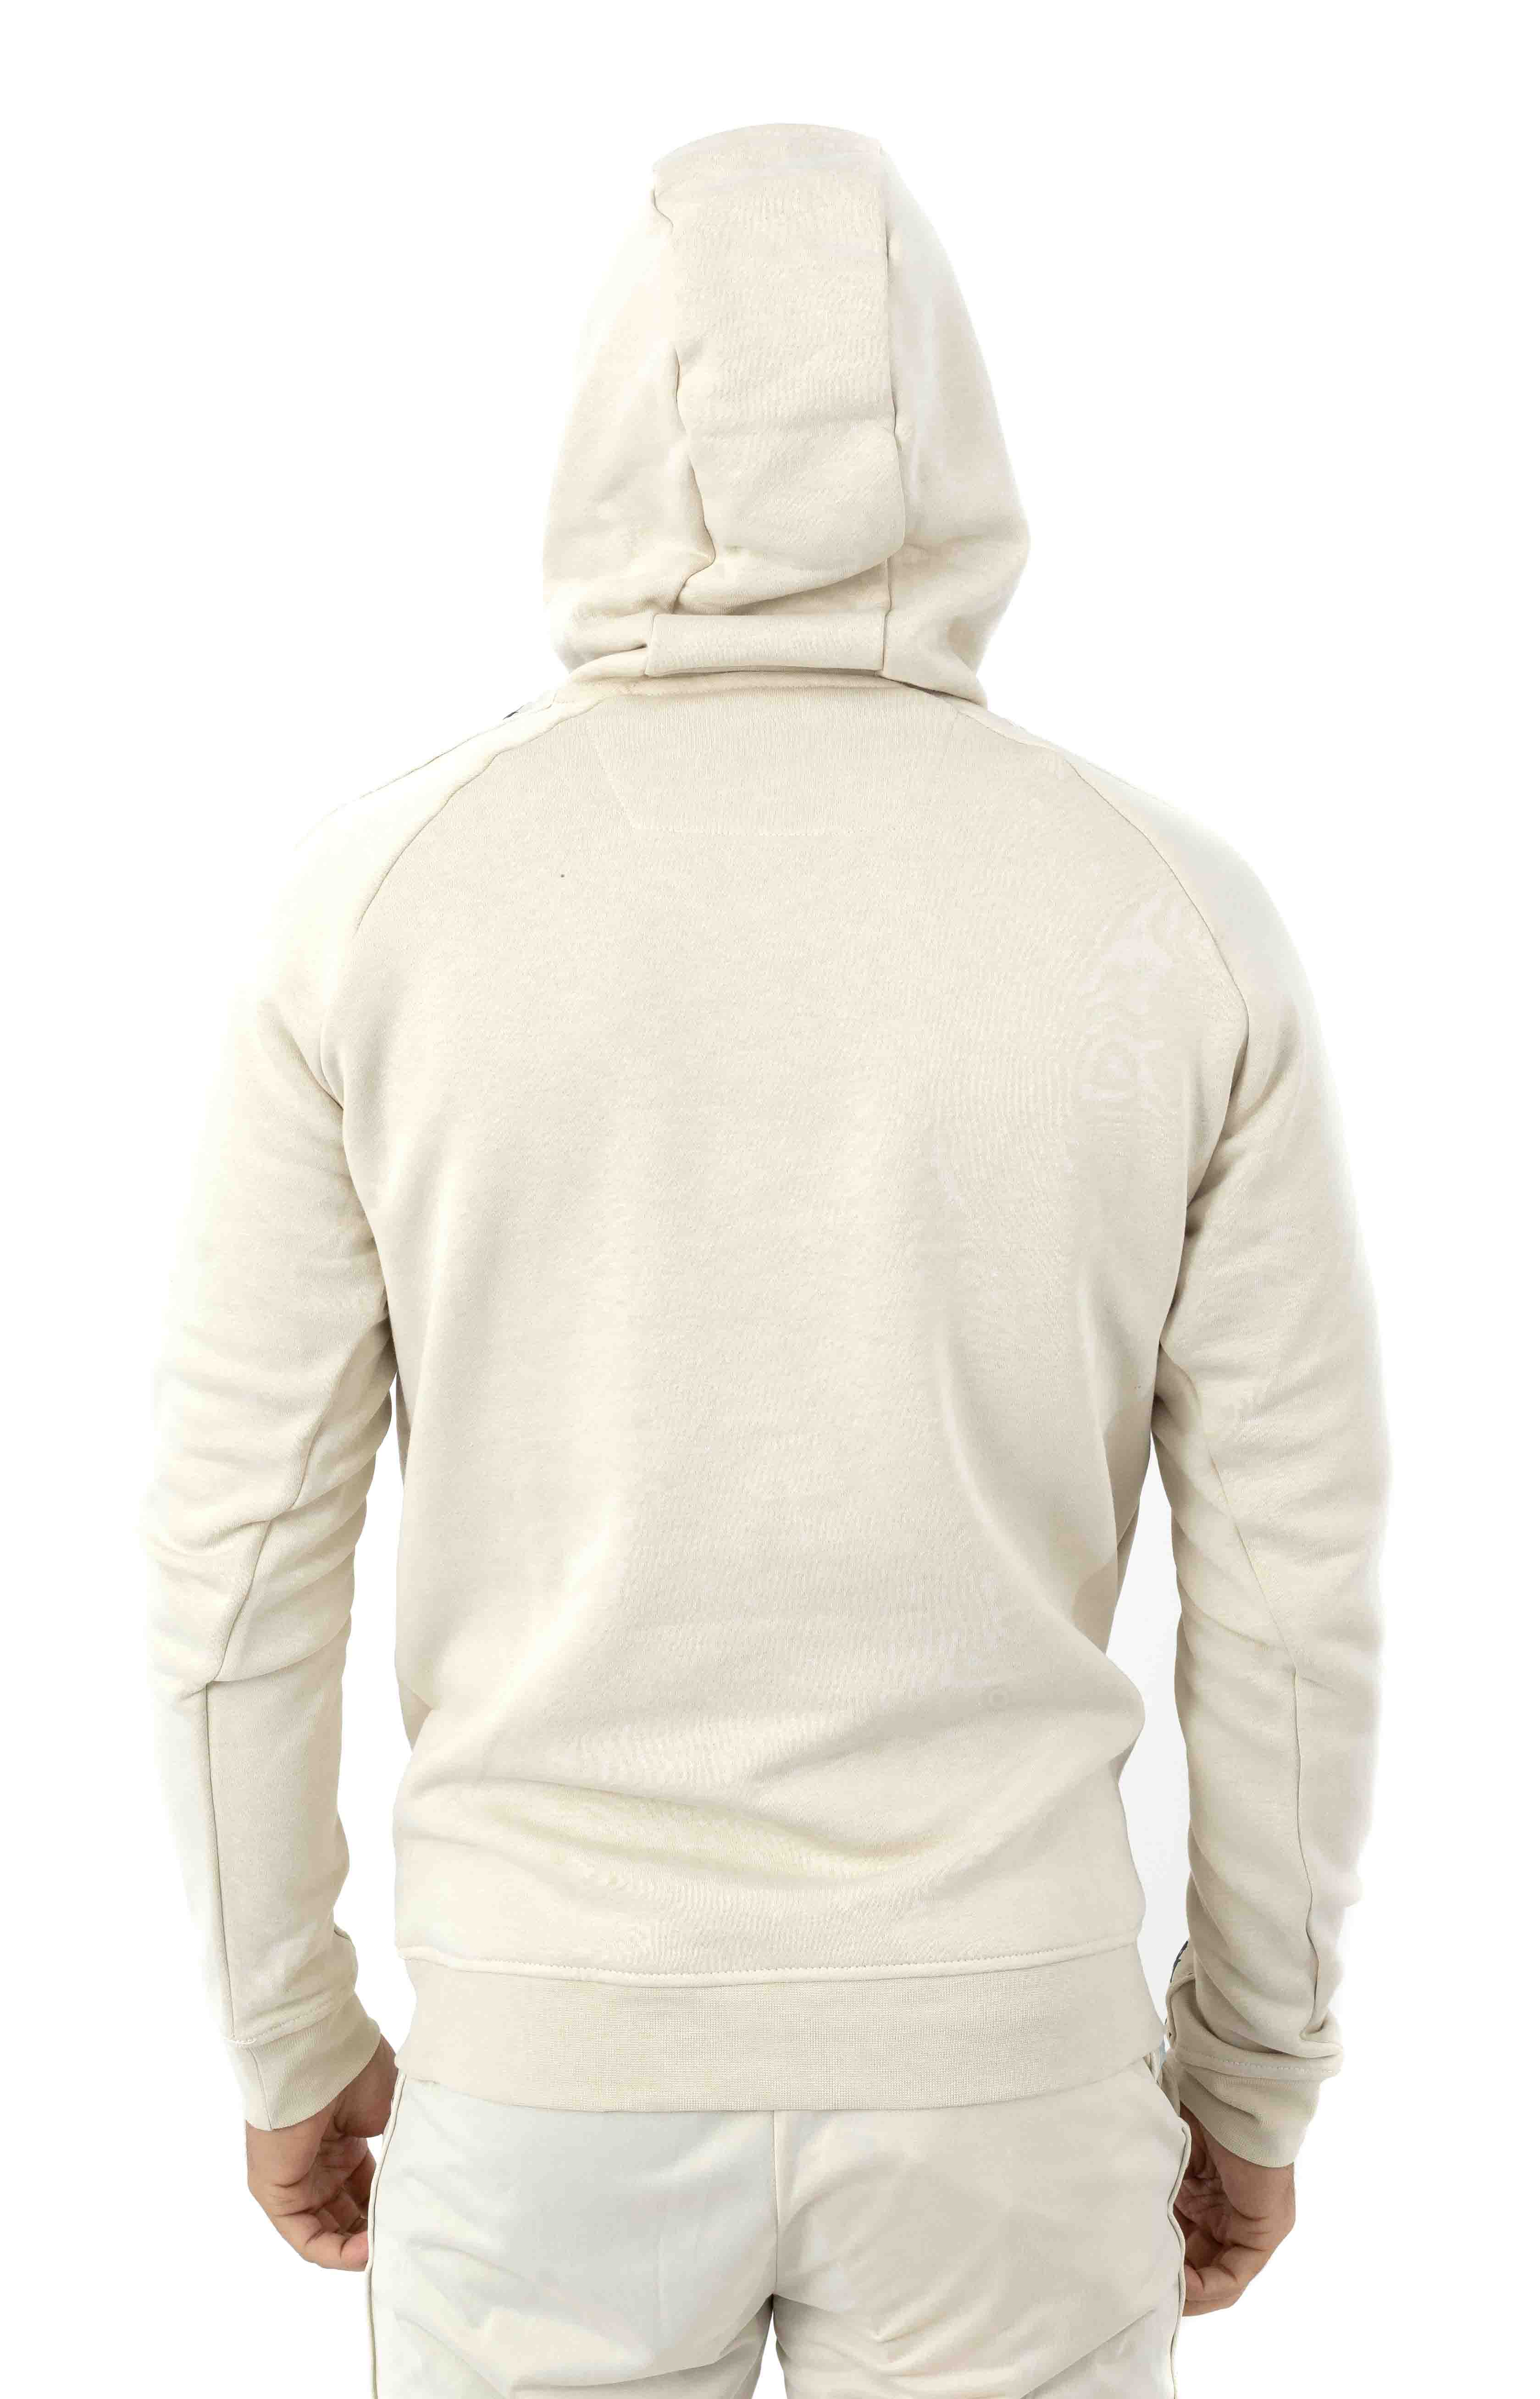 222 Banda Dinto Pullover Hoodie - White Egg/Illusion Blue 3